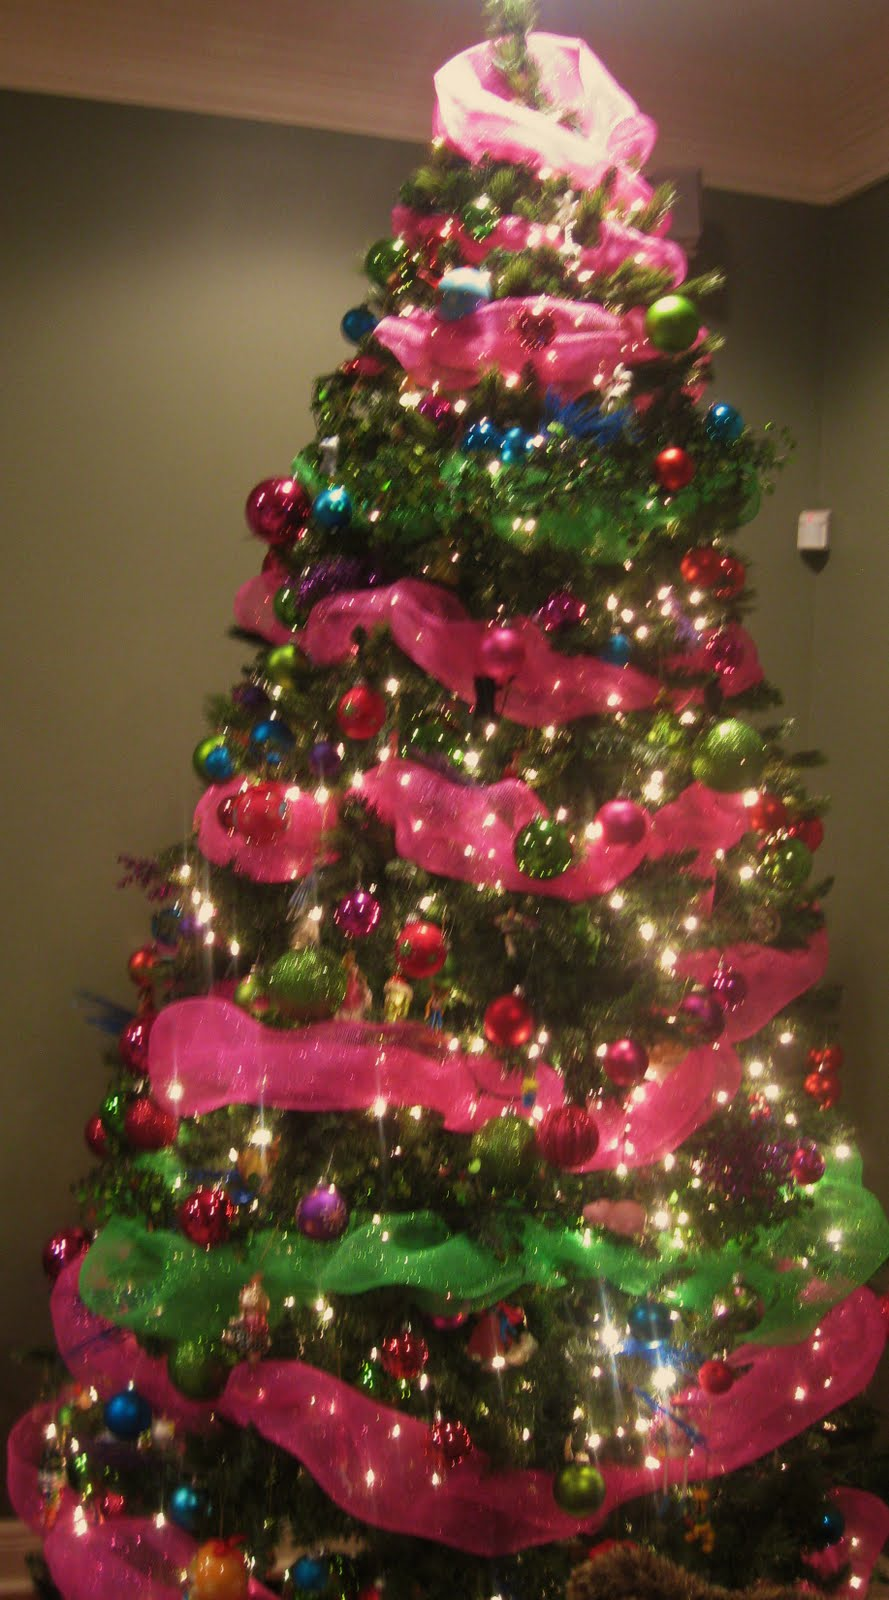 pink and green christmas tree decorations merry christmas - Pink Christmas Tree Decorations